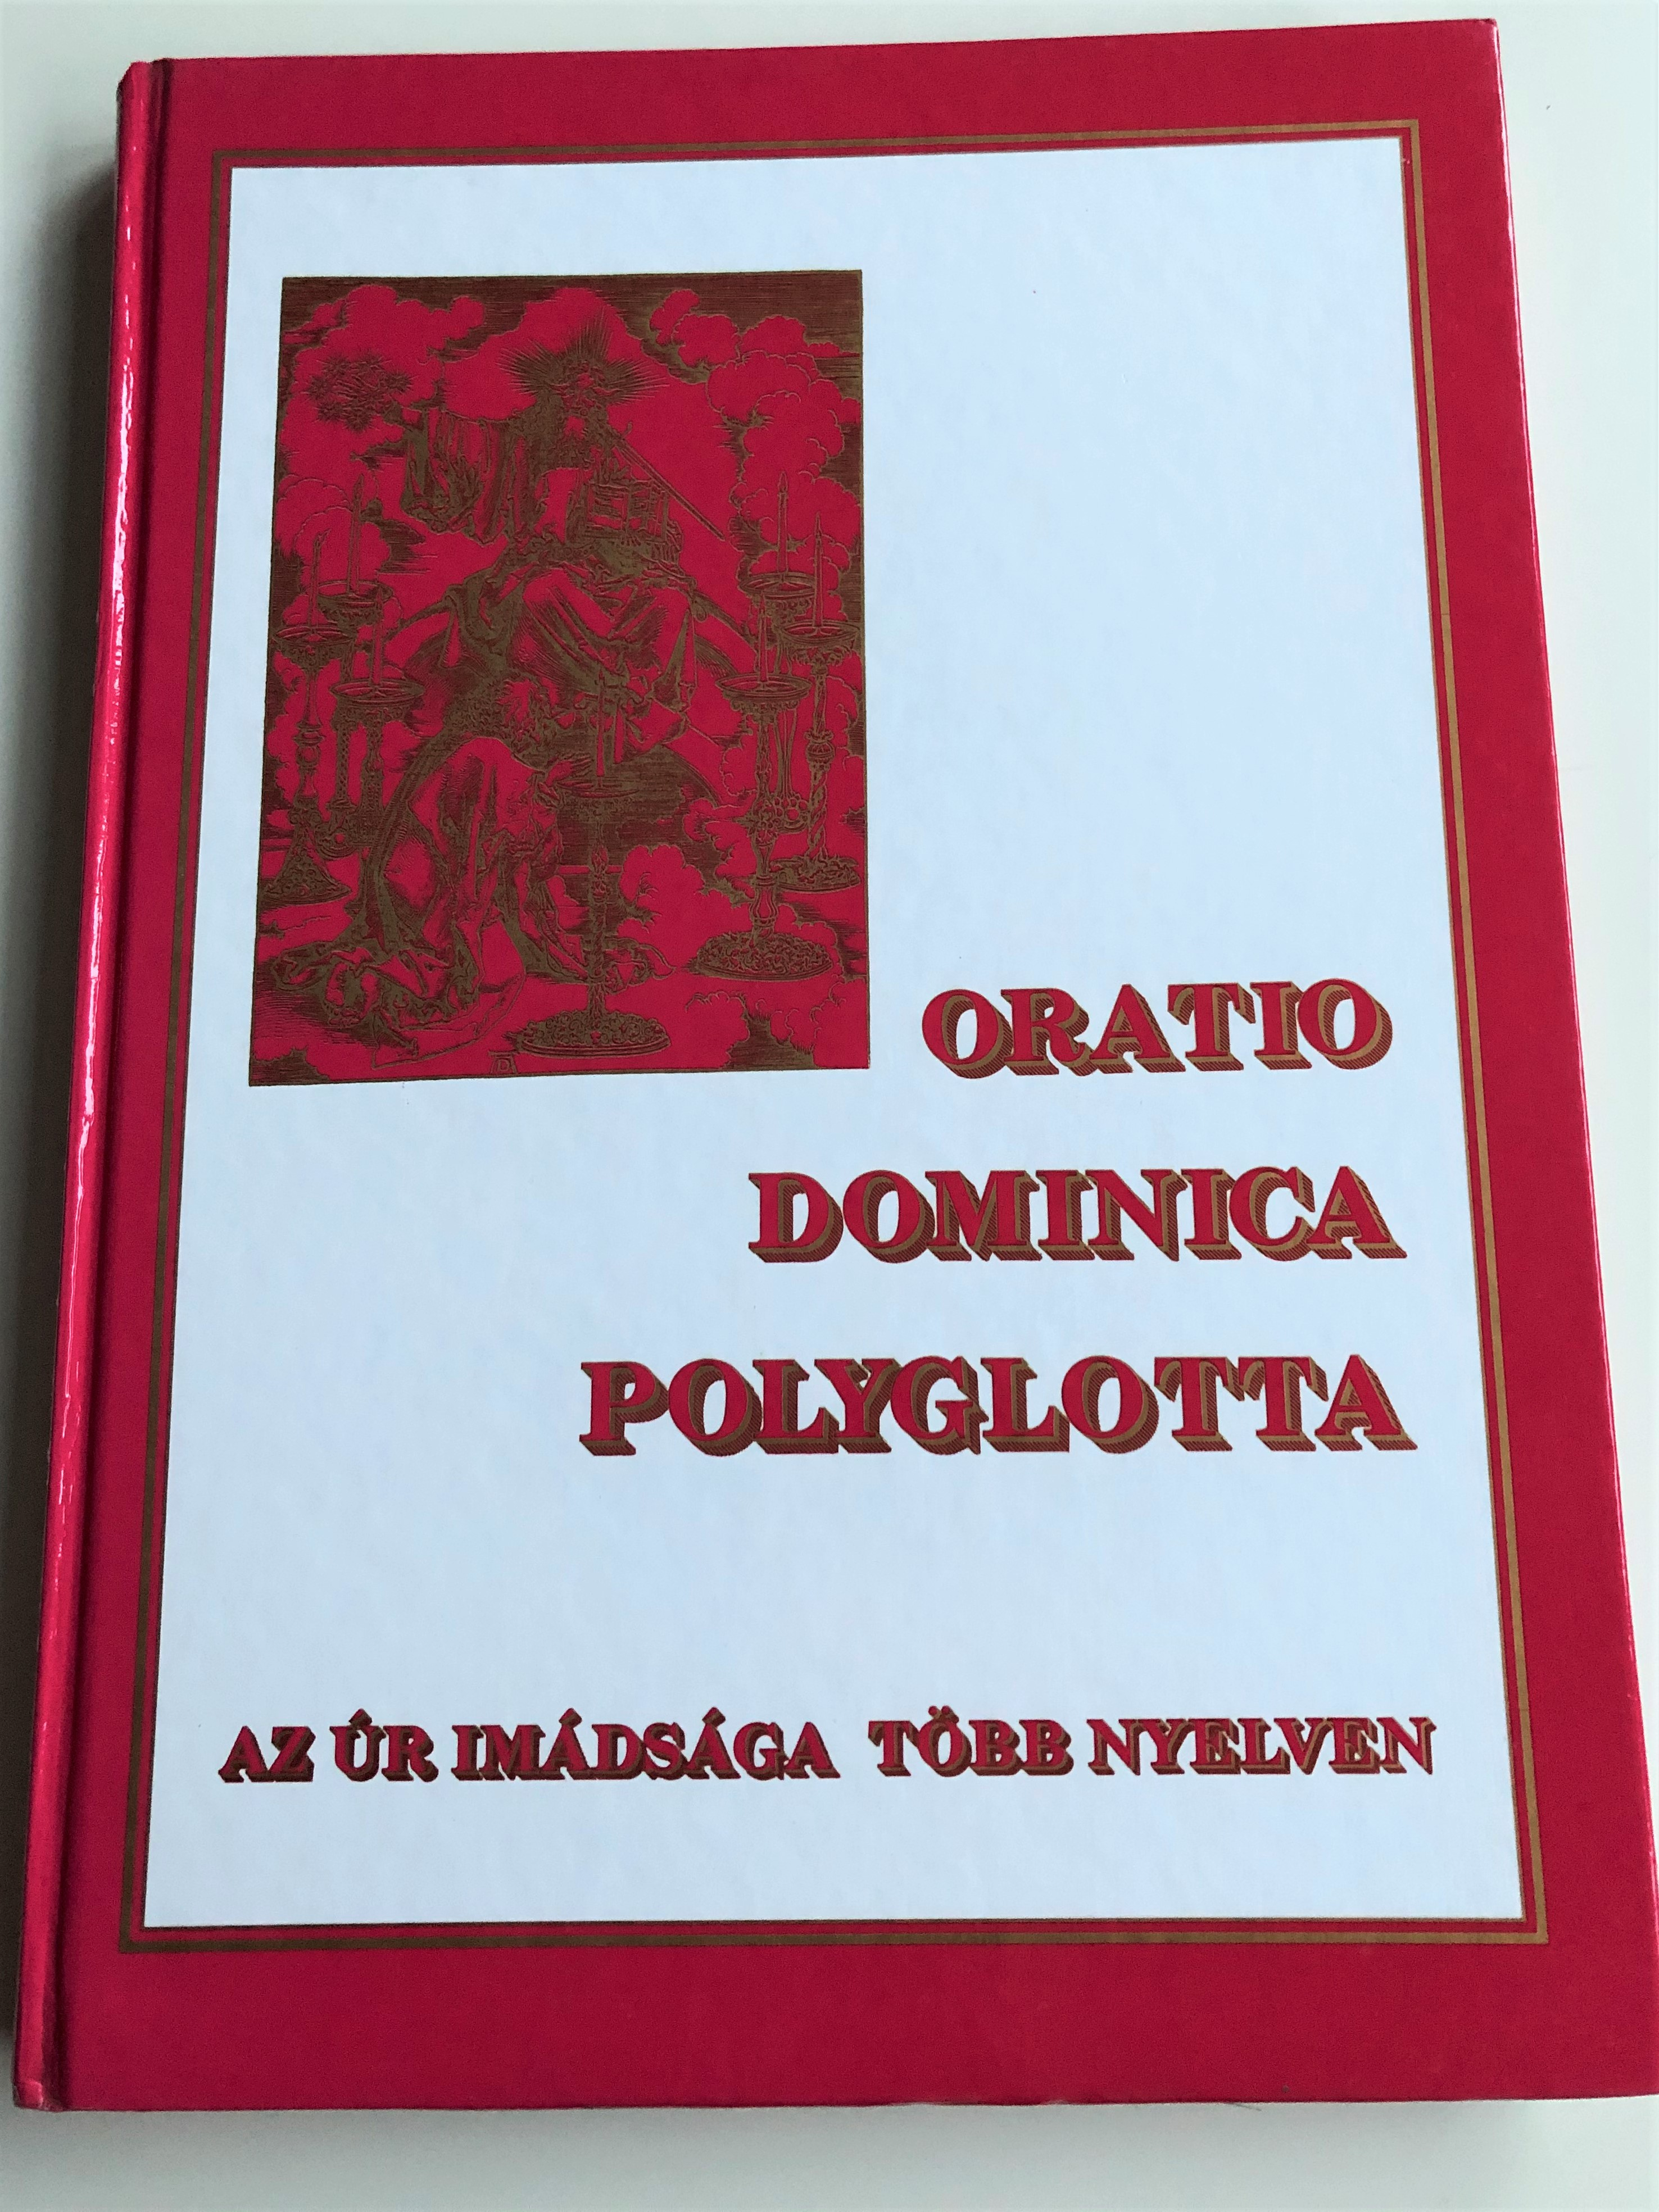 oratorio-dominica-polyglotta-the-lord-s-prayer-in-many-languages-1.jpg